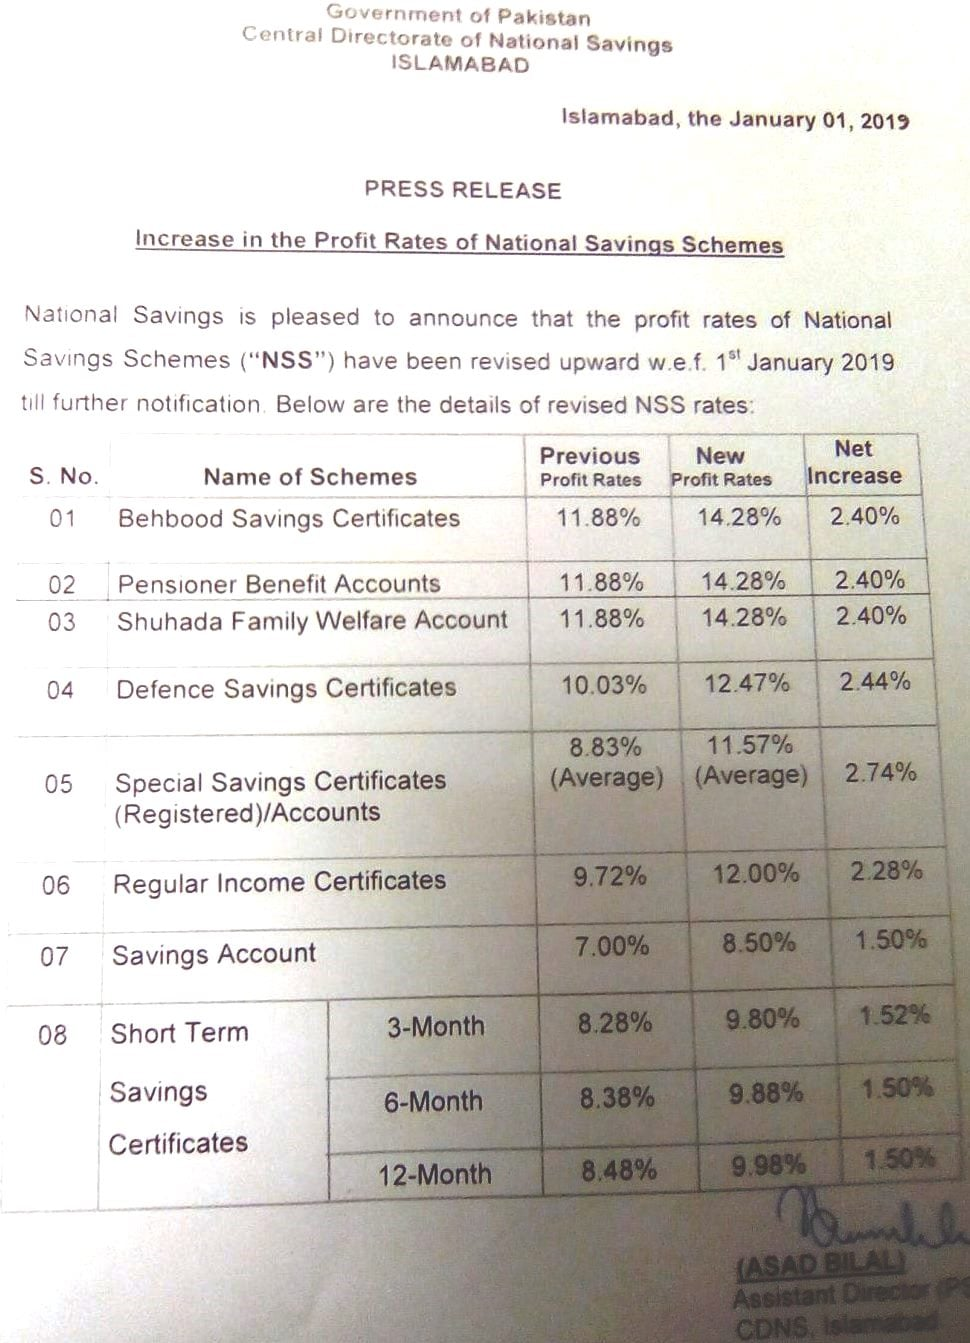 Post office national savings certificate (nsc) interest rates 2019.